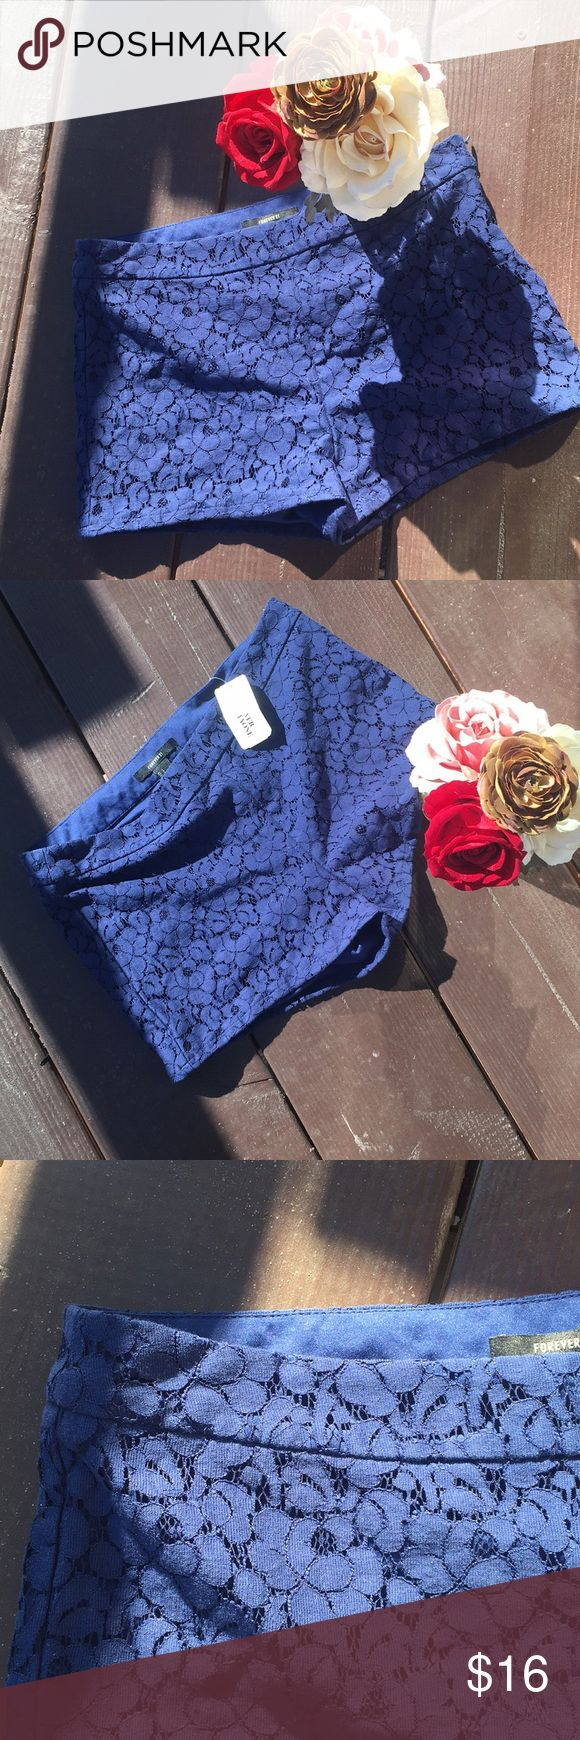 NWT NAVY BLUE LACE SHORTS Navy blue lace Forever 21 shorts , flower lace design. NWT 🙋🏻‍♀️ - all reasonable offers welcome! 🛍 - bundle offers! Forever 21 Shorts